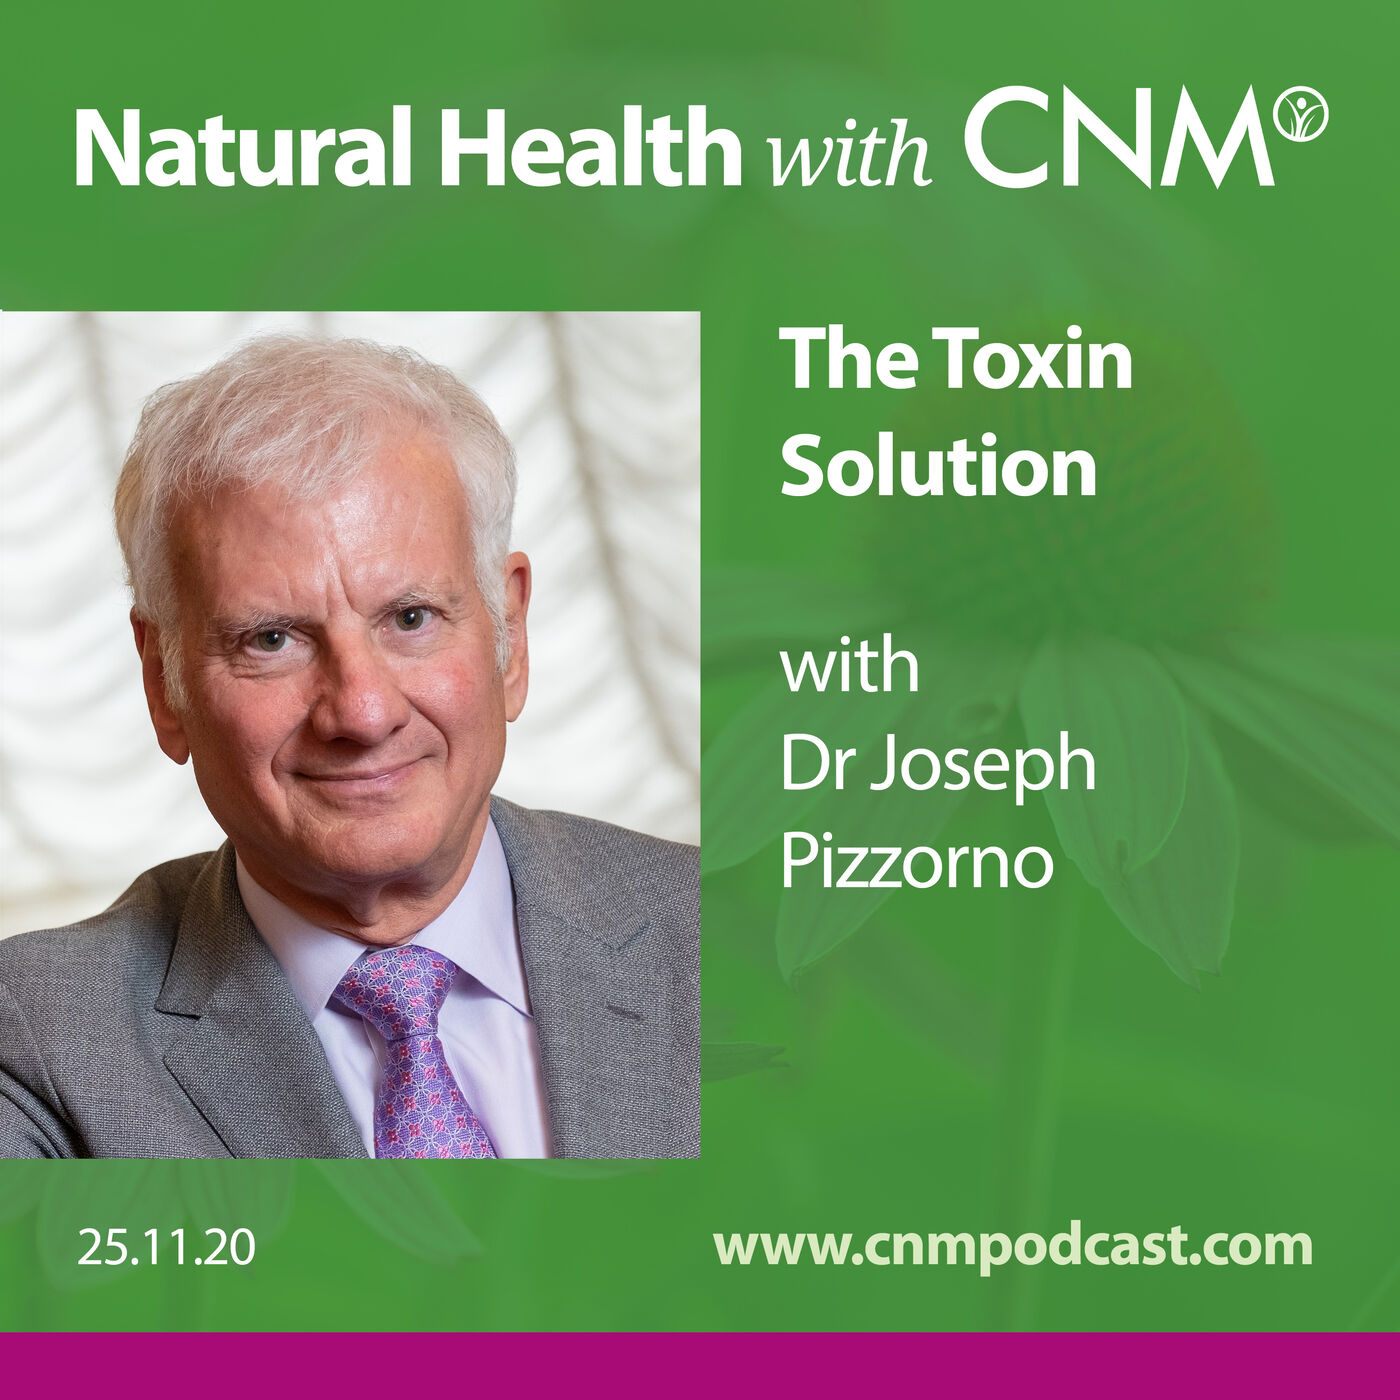 The Toxin Solution with Dr Joseph Pizzorno